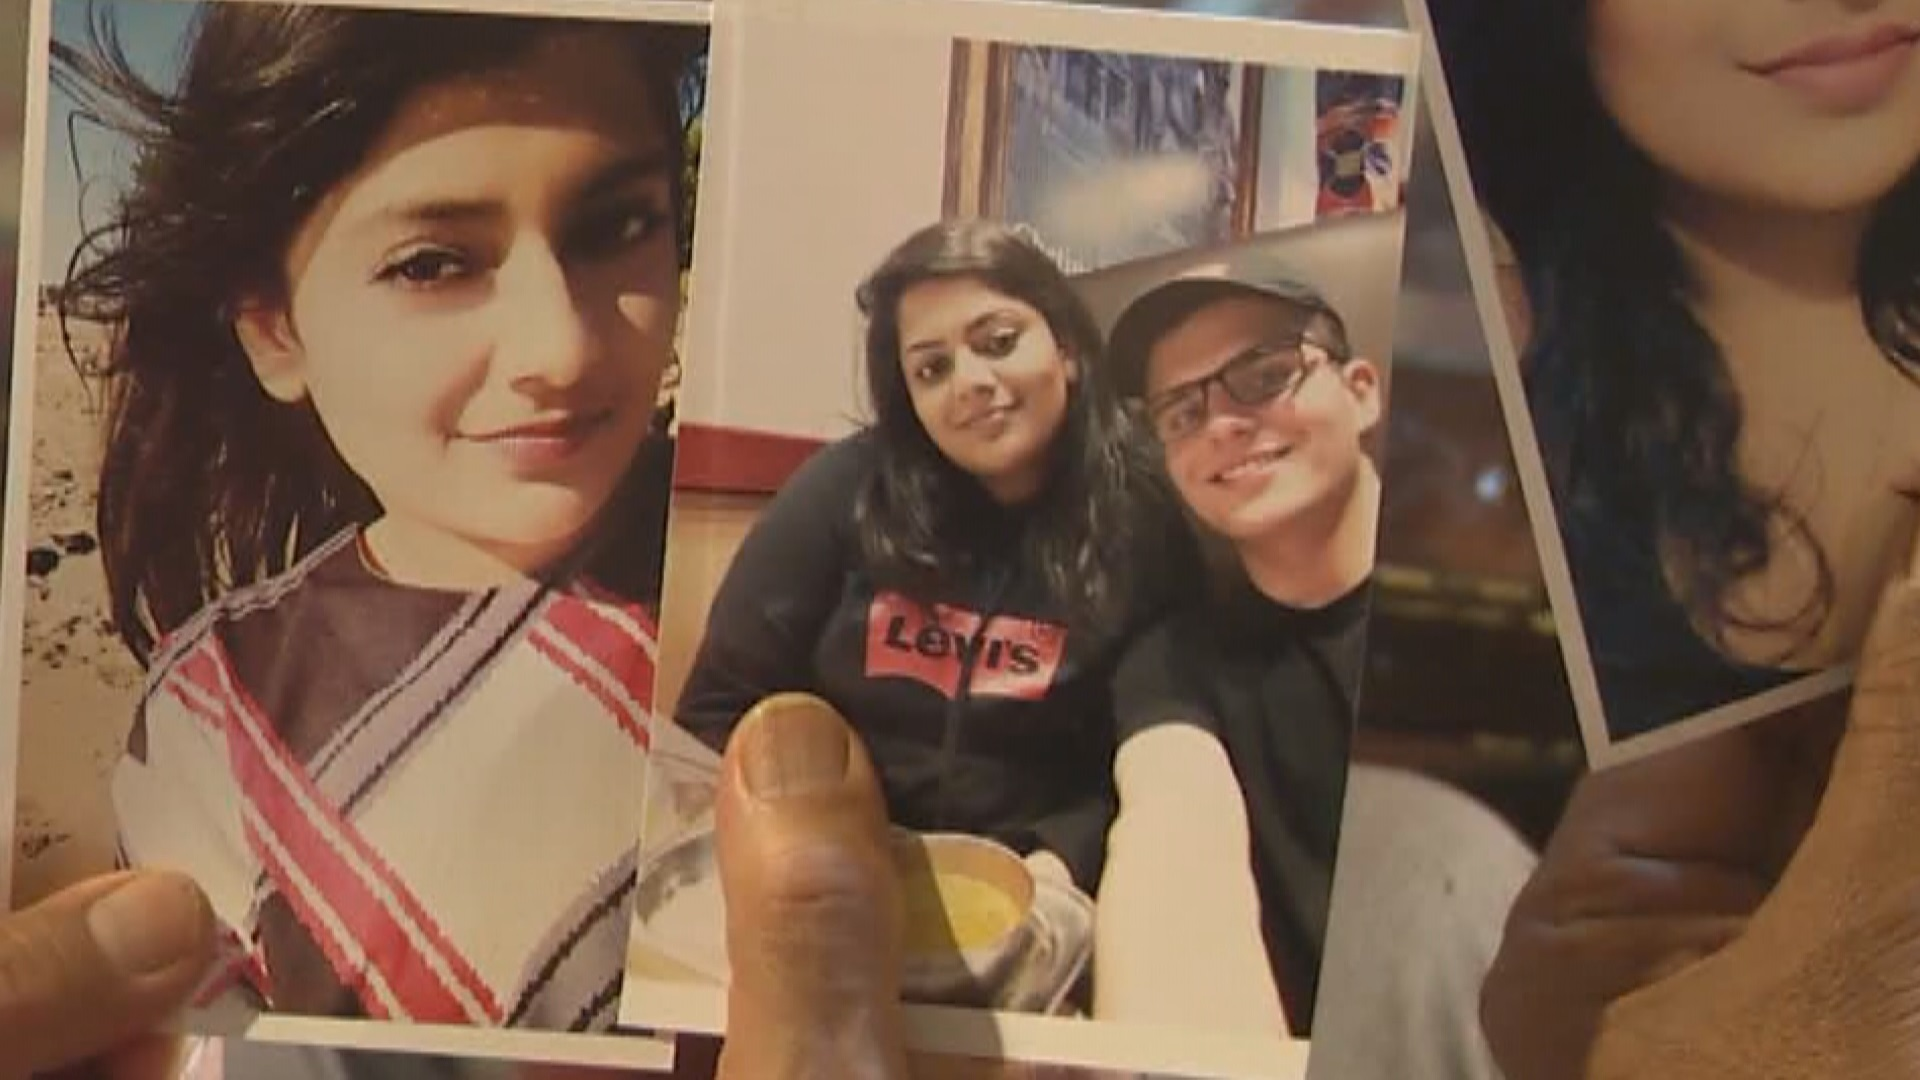 Father of murdered international student reveals new details in tragedy